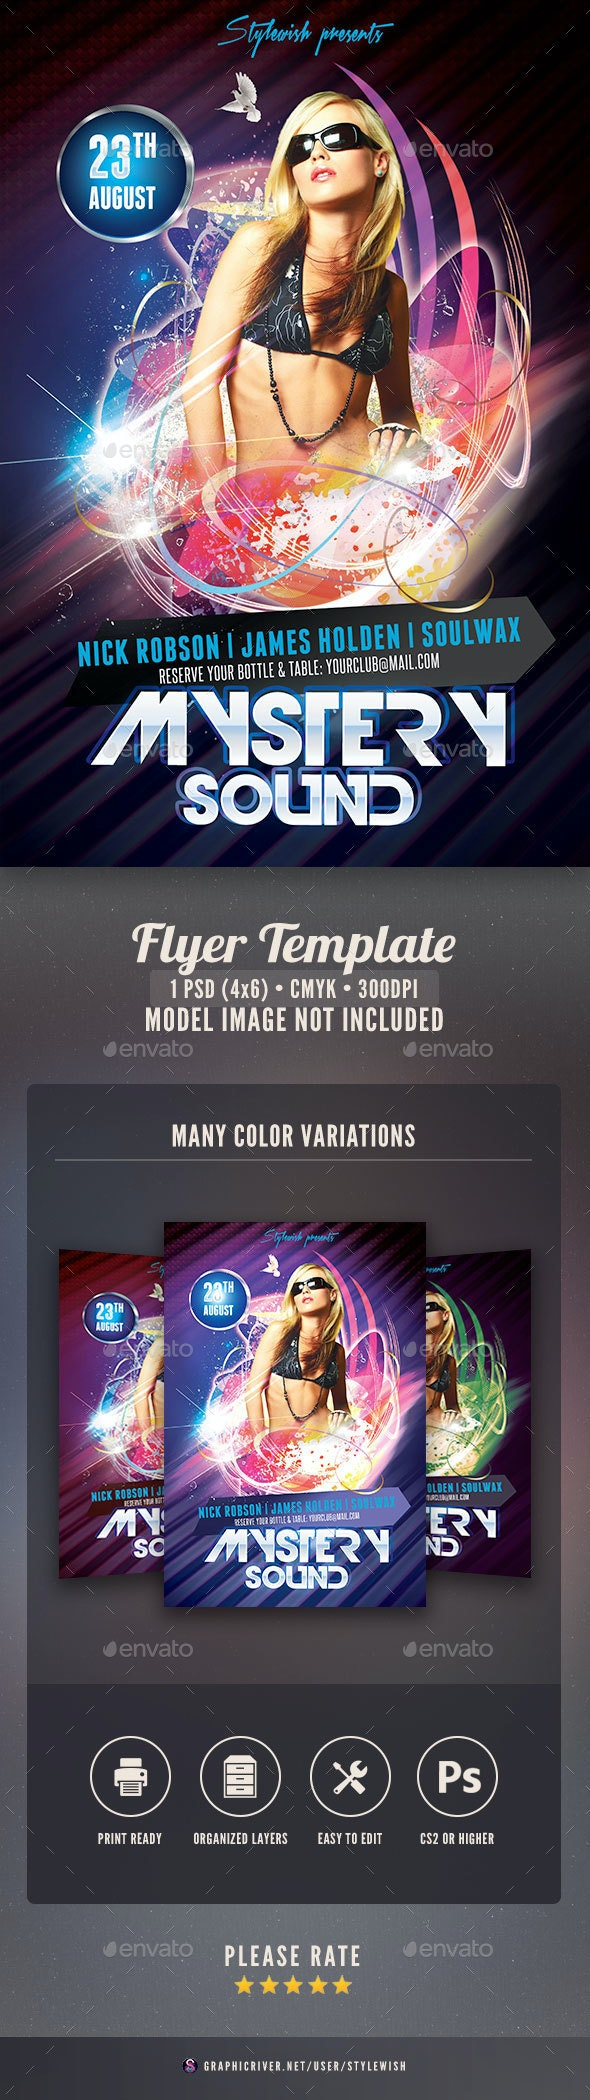 Mystery Sound Flyer - Clubs & Parties Events